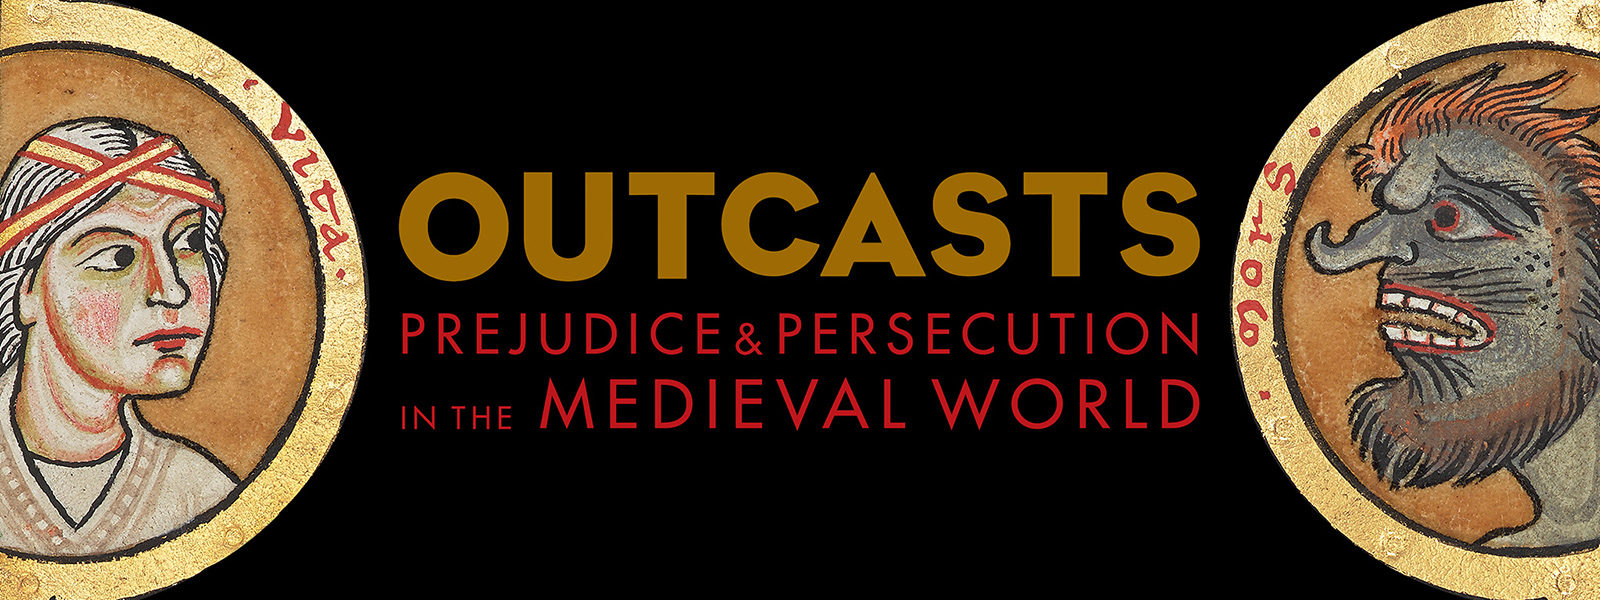 "Decorative banner with details of a medieval manuscript and text reading ""Outcasts: Prejudice & Persecution in the Medieval World"""